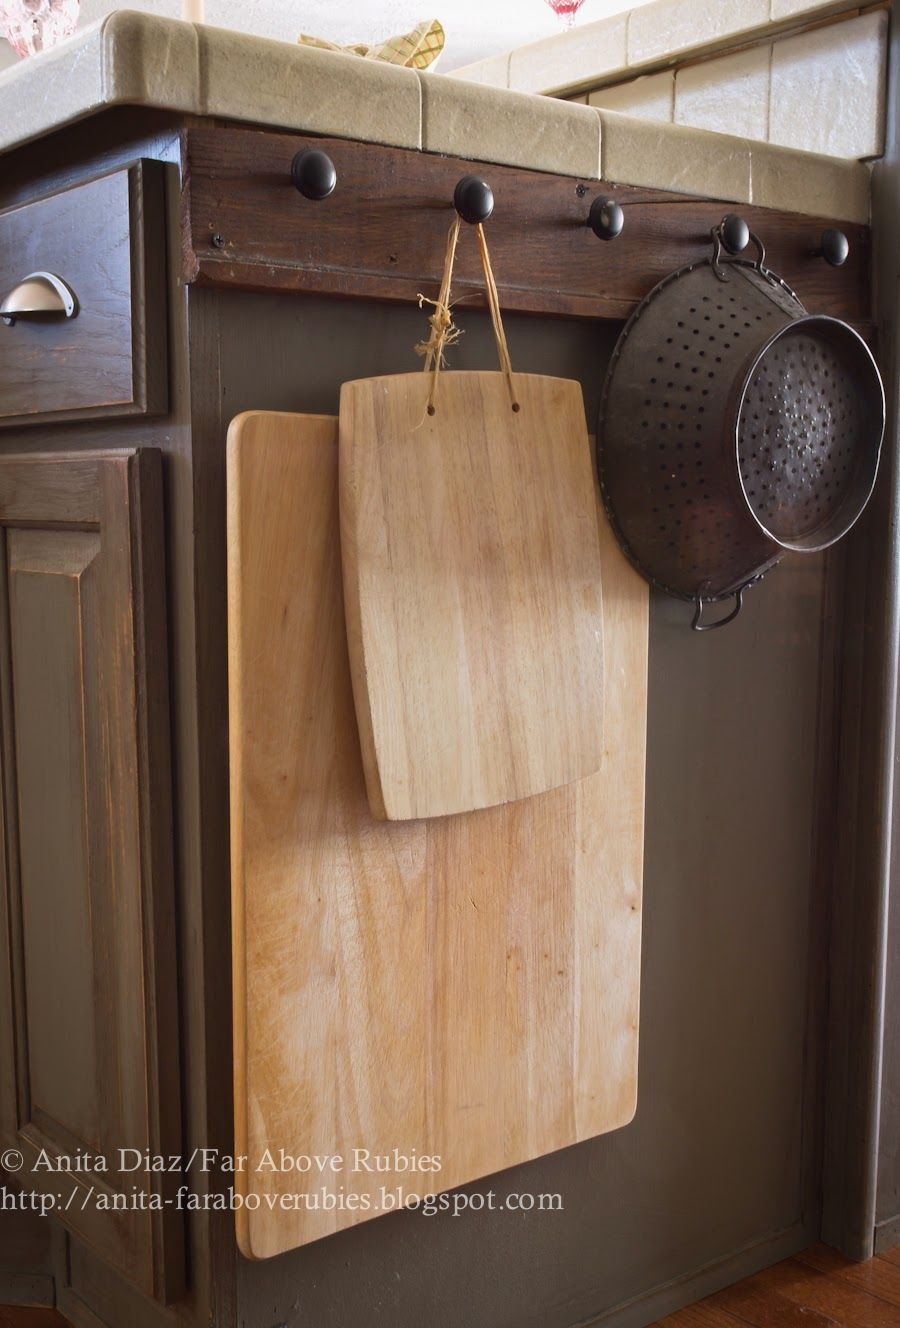 This is a great idea for storing often used cutting boards ...